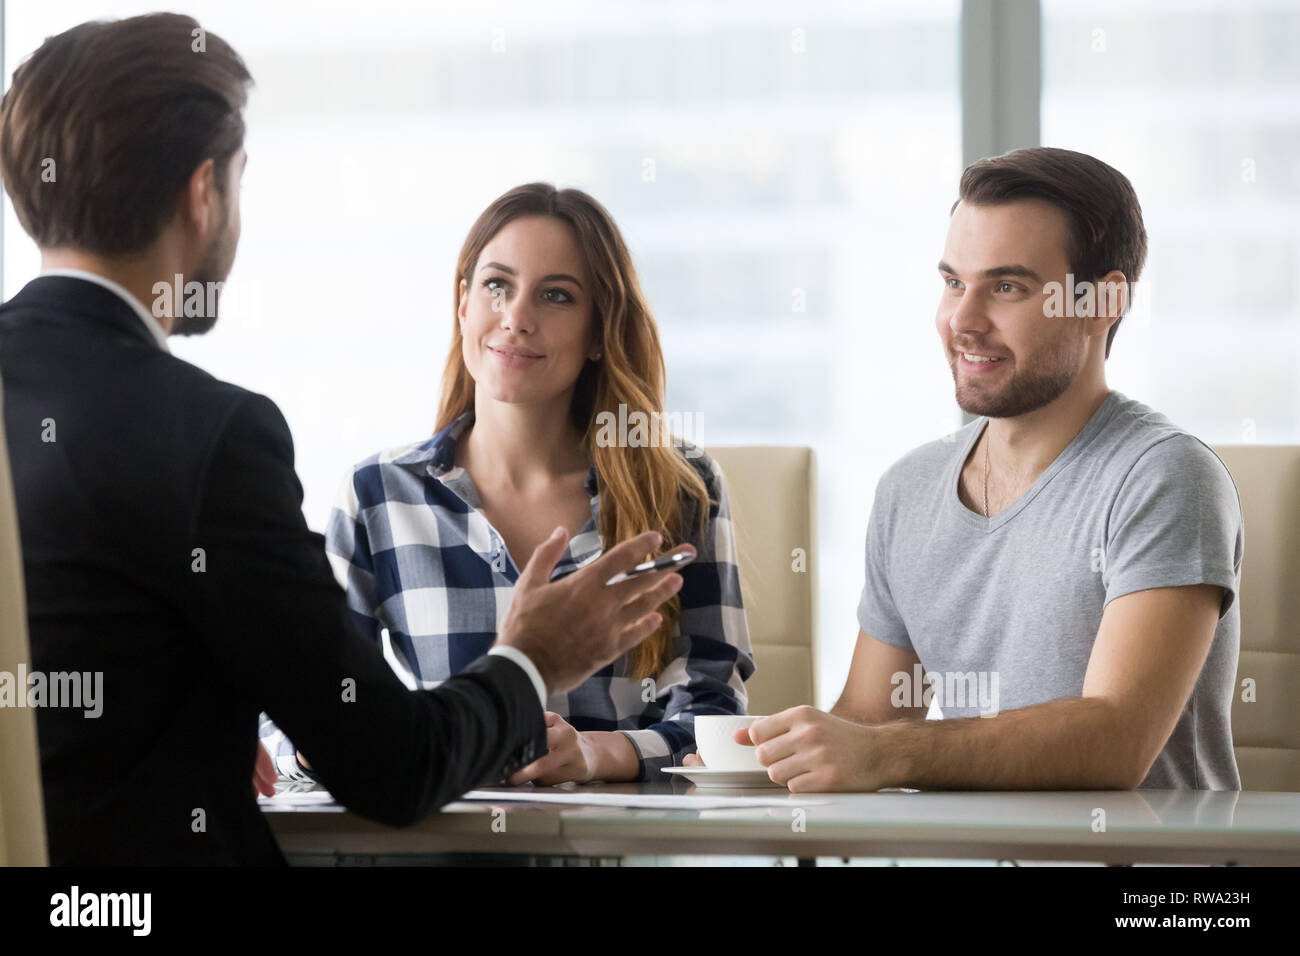 Financial advisor making presentation offer to clients at meeting - Stock Image